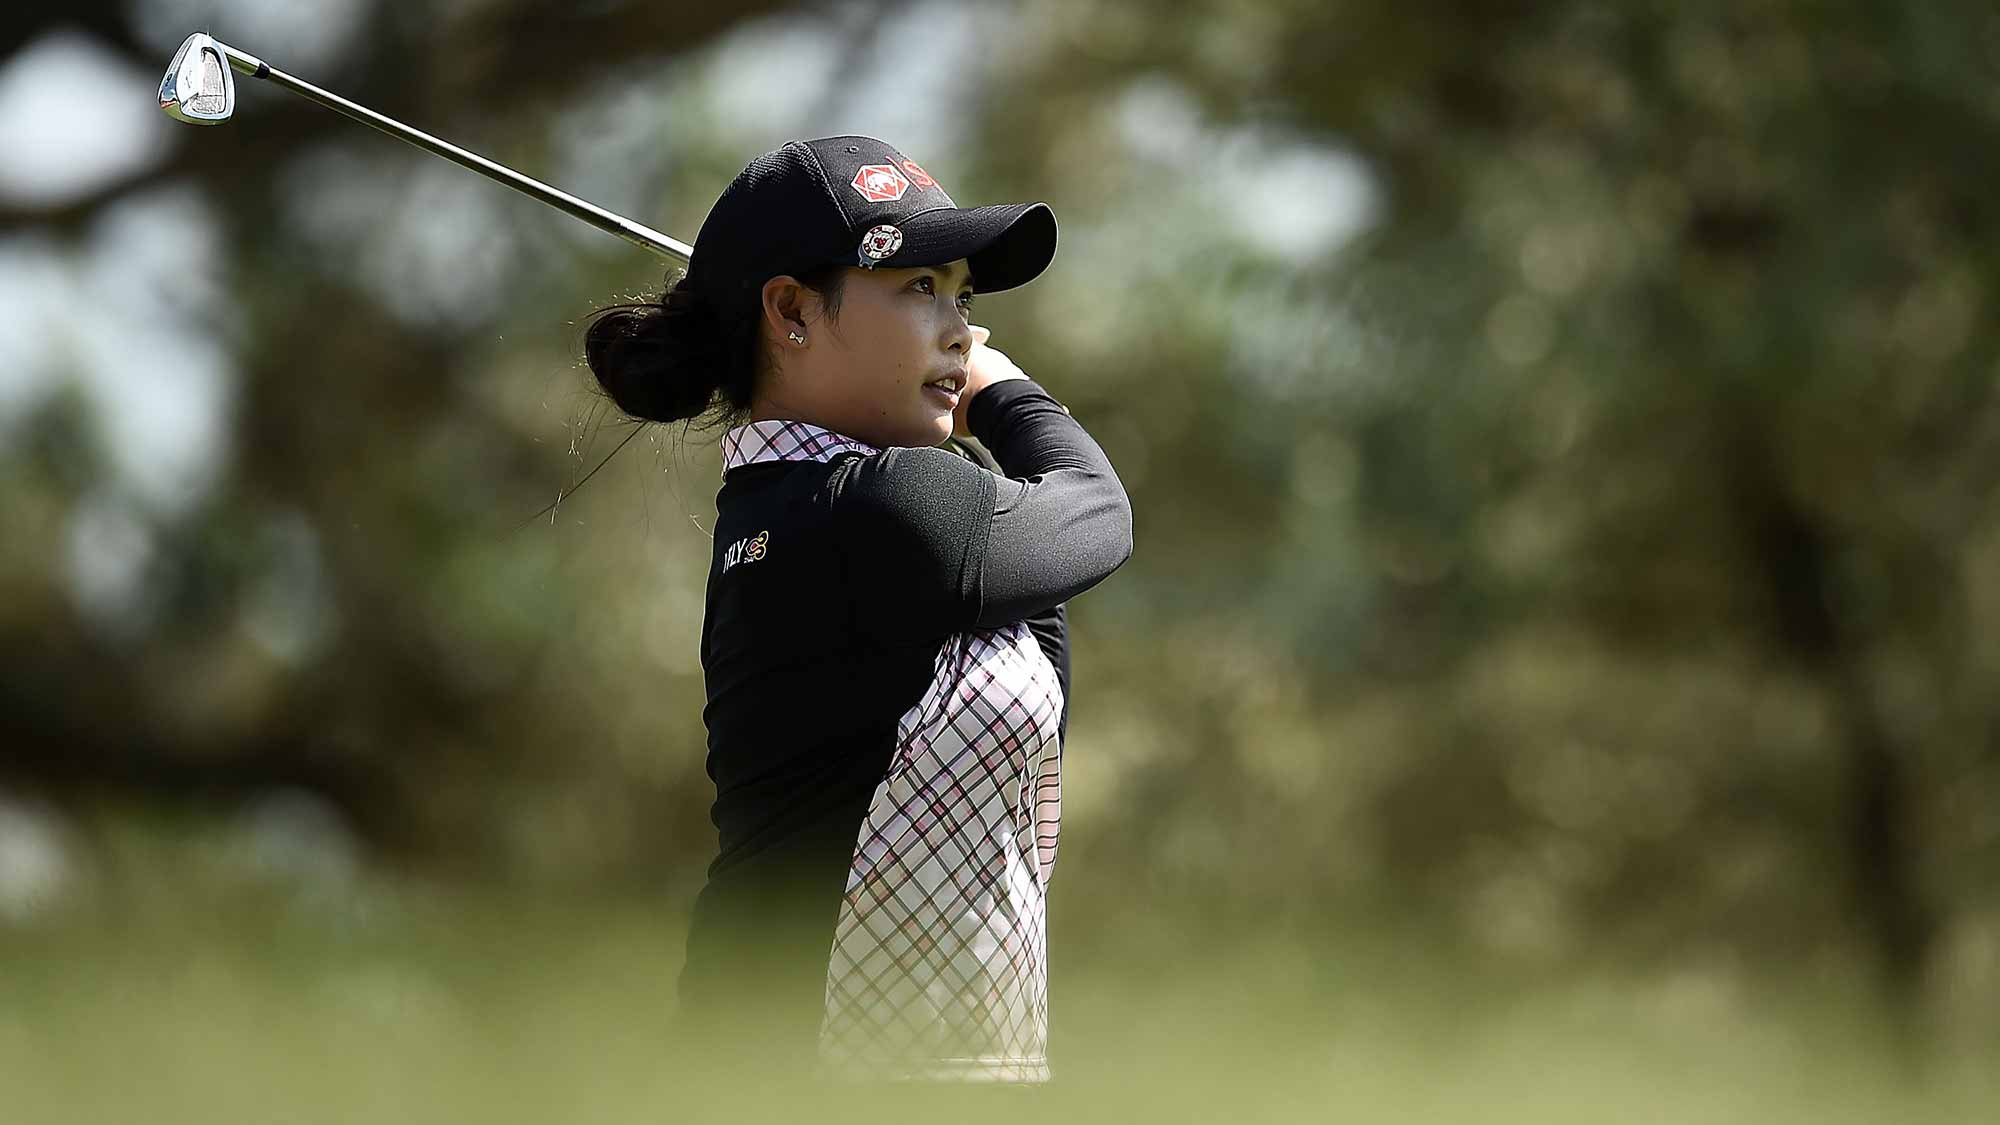 Moriya Jutanugarn of Thailand watches her tee shot on the 12th hole during the first round of the Meijer LPGA Classic at Blythefield Country Club